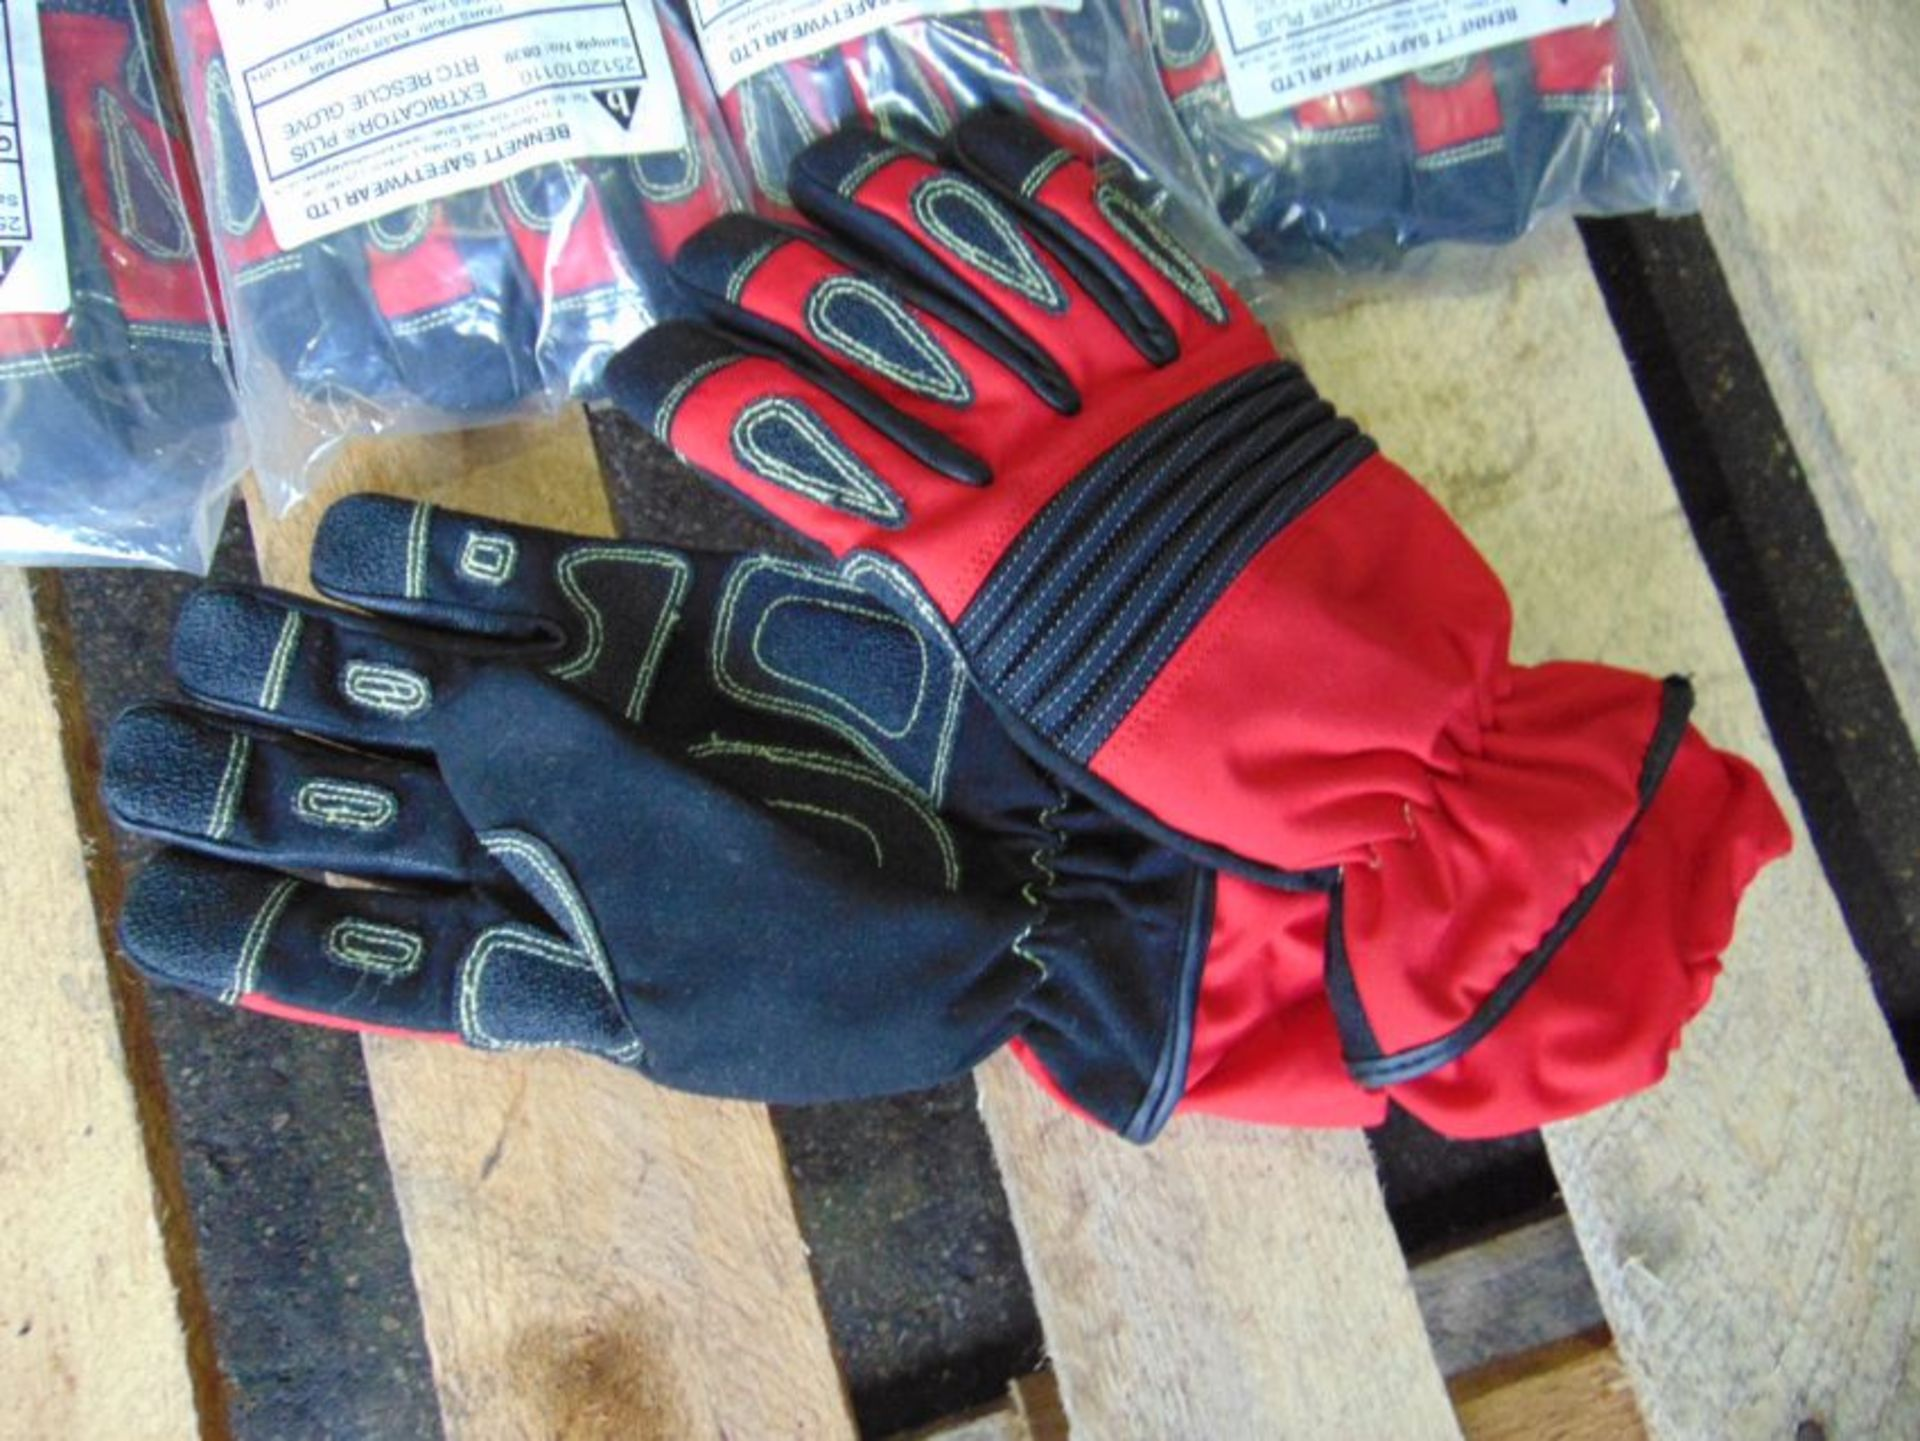 QTY 5 x Unissued M Bennett Extricator Plus RTC Gloves - Image 2 of 5